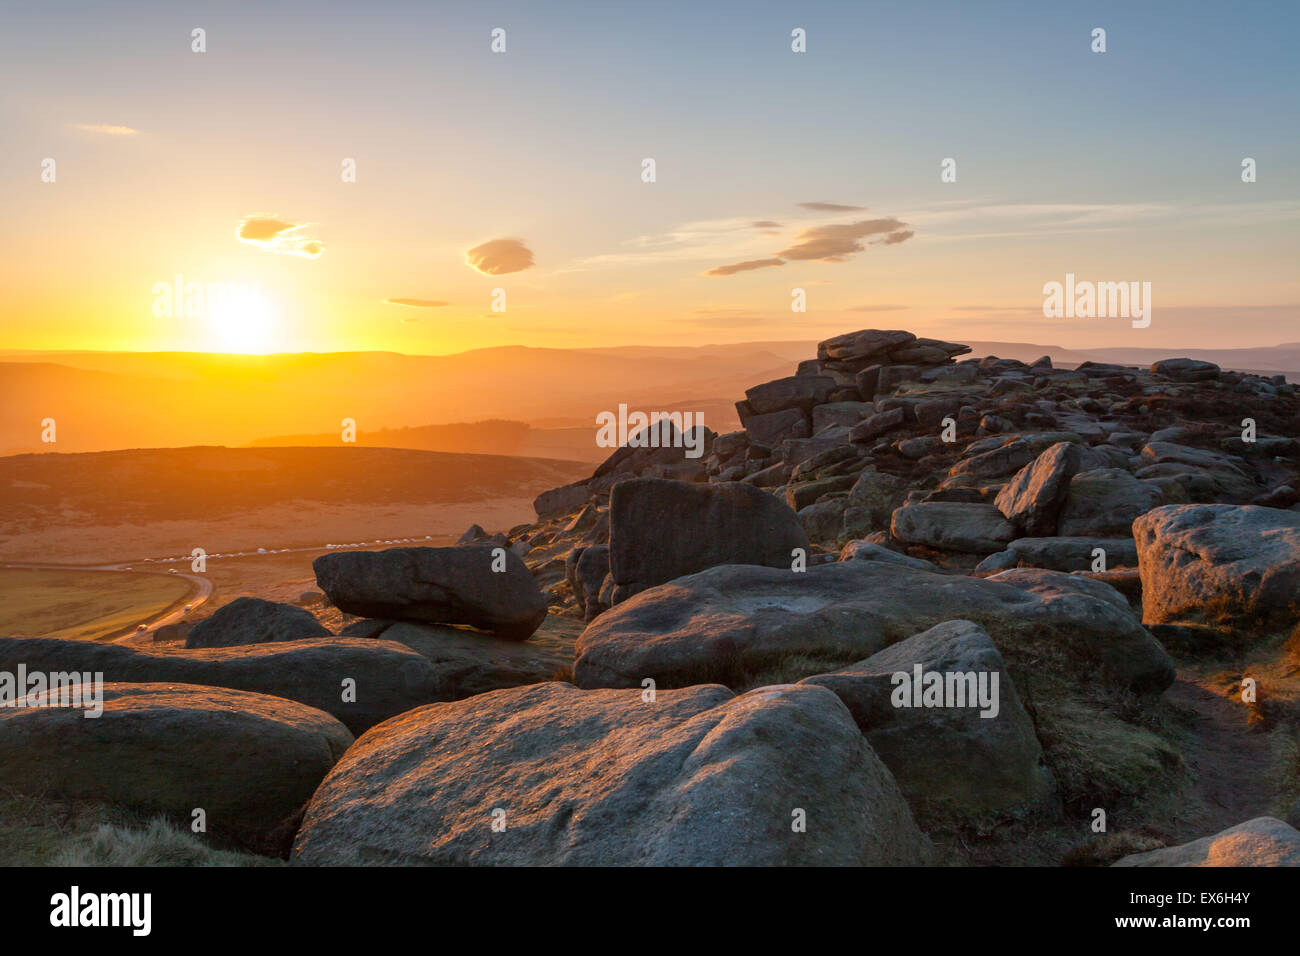 Stanage Edge Hathersage sunset over the millstone grit slabs derbyshire Peak District - Stock Image